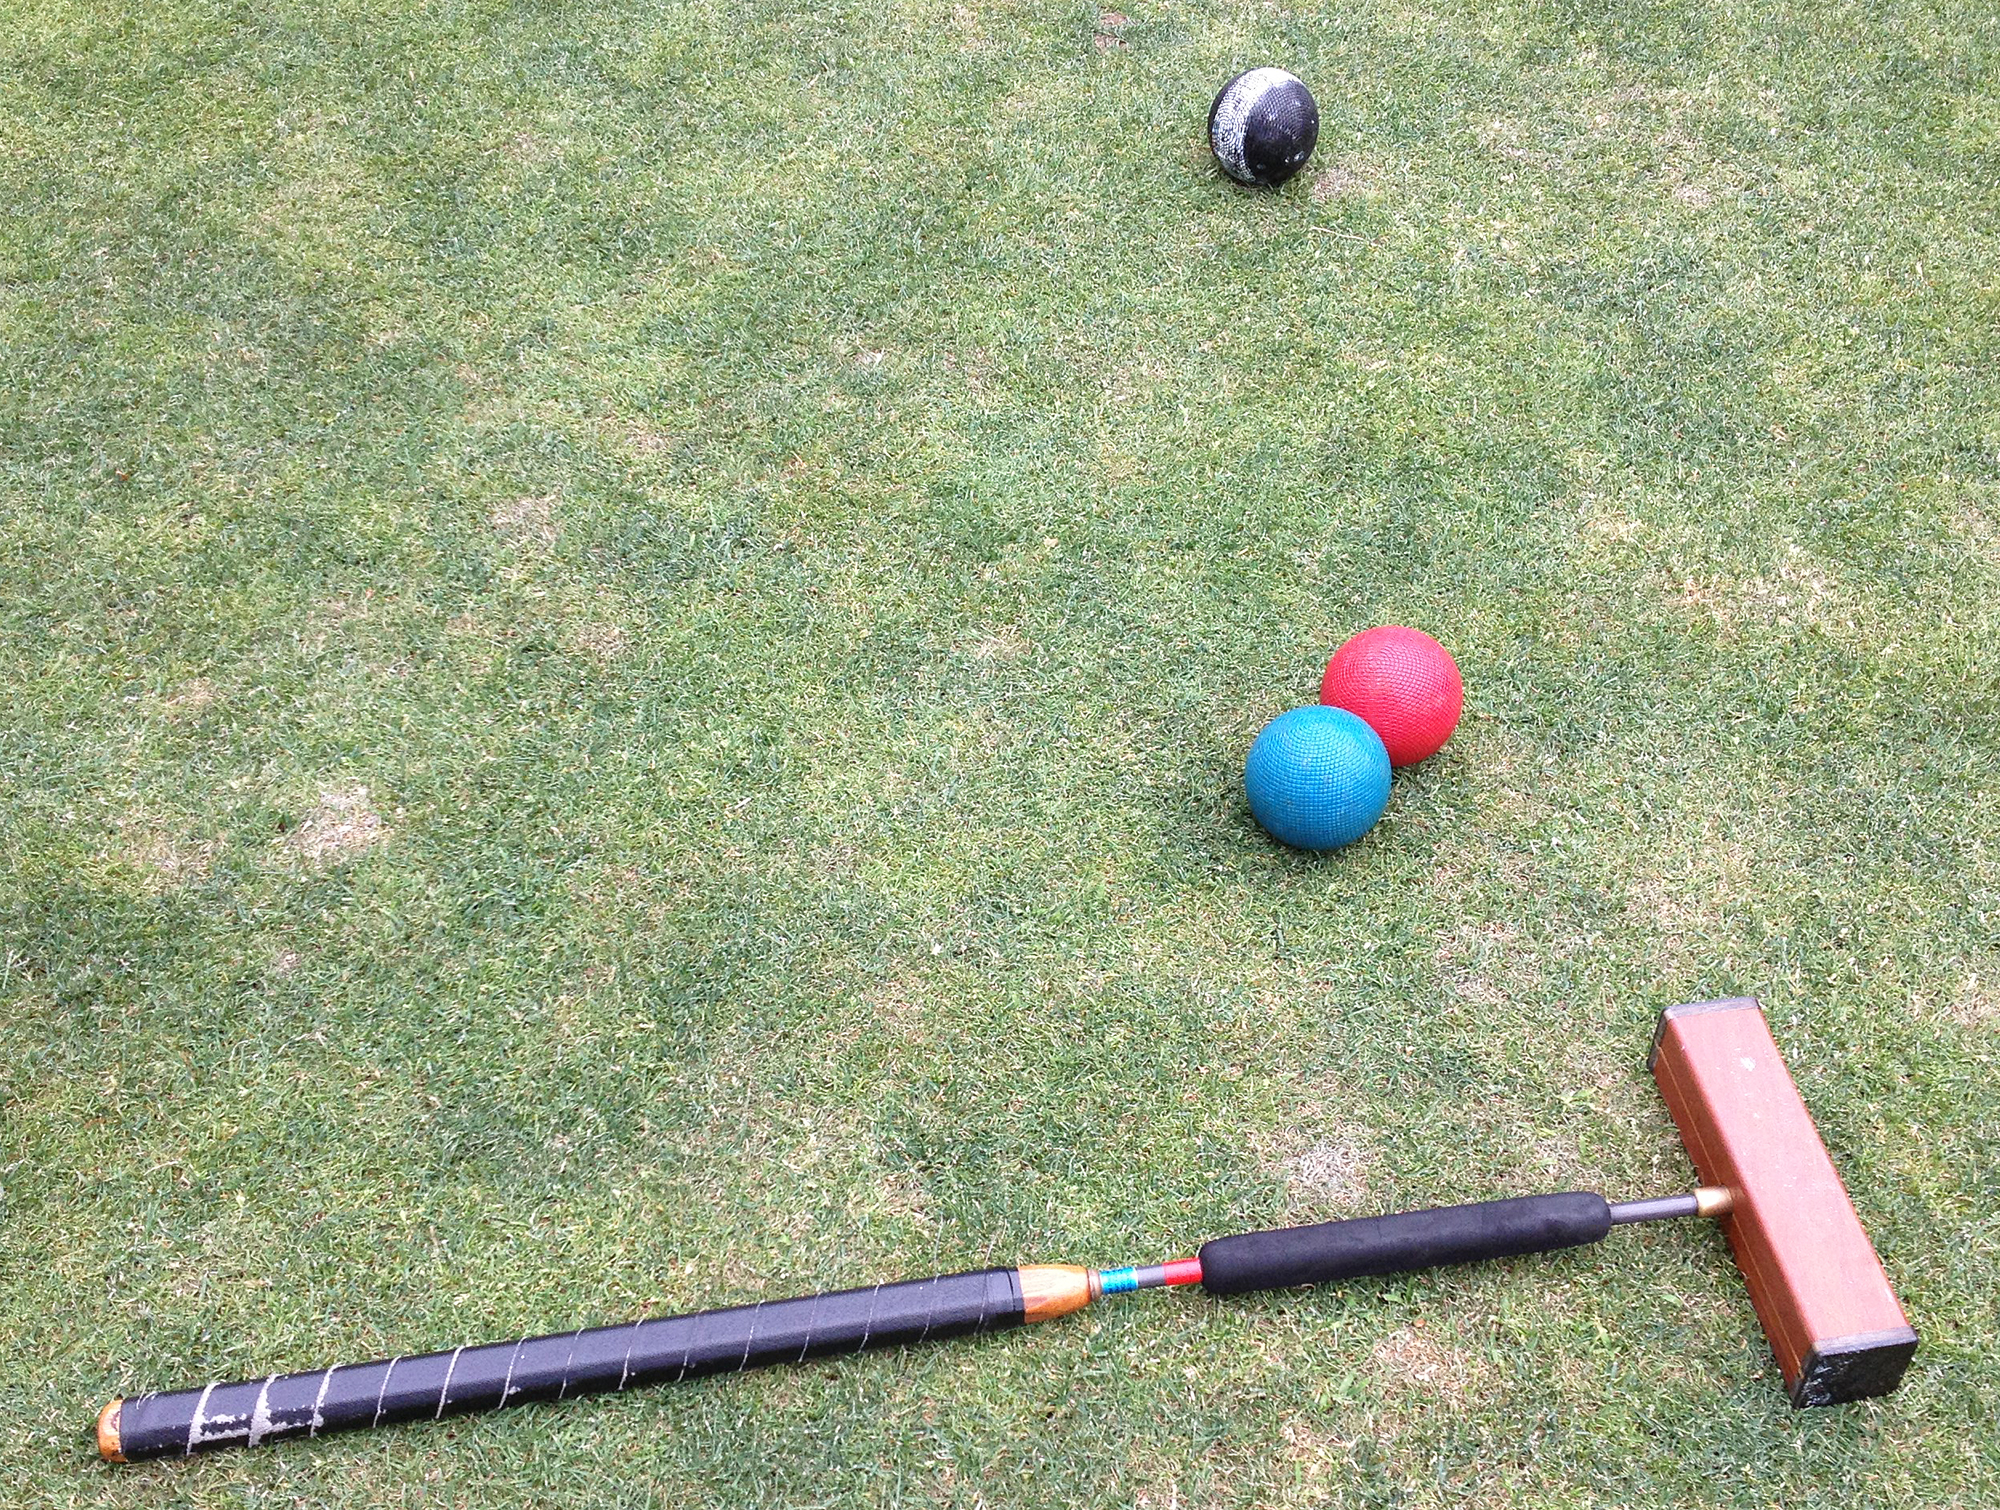 croquet mallet and balls, New York Croquet Club, Central Park sports